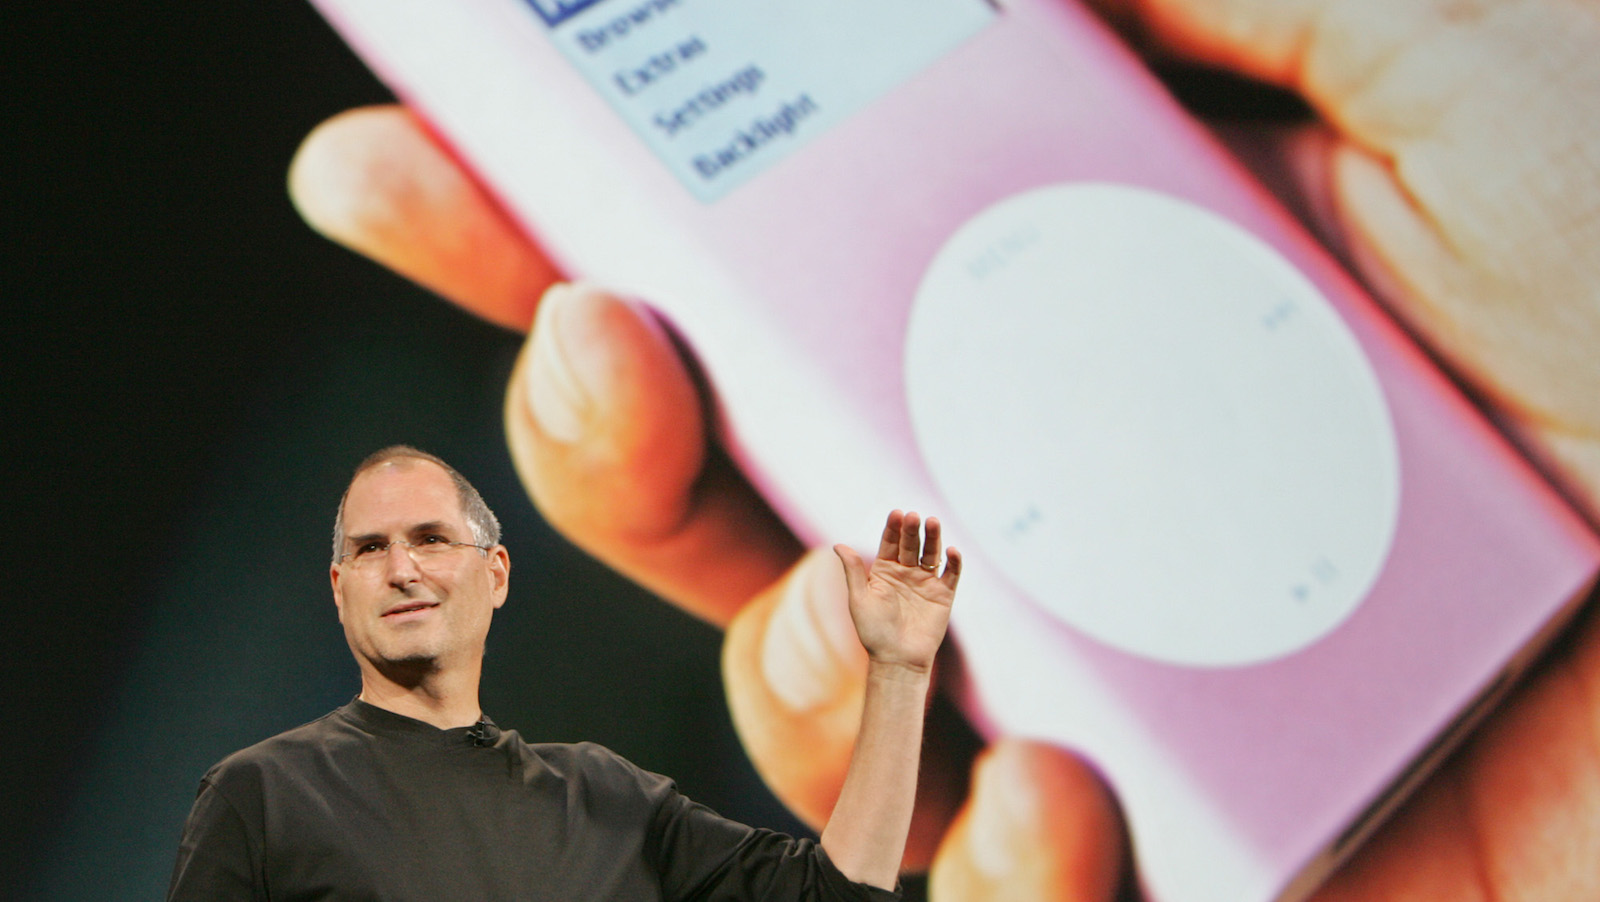 FILE - In this Aug. 4, 2005 file photo, Apple CEO Steve Jobs speaks during a launch event for Apple's music download service, iTunes, in Tokyo. A billion-dollar class-action lawsuit over Apple's iPod music players heads to trial in a California federal court Tuesday, Dec. 2, 2014, in an antitrust case where the legal wrangling has lasted far longer than the technology that sparked the complaint. (AP Photo/Shizuo Kambayashi, File)